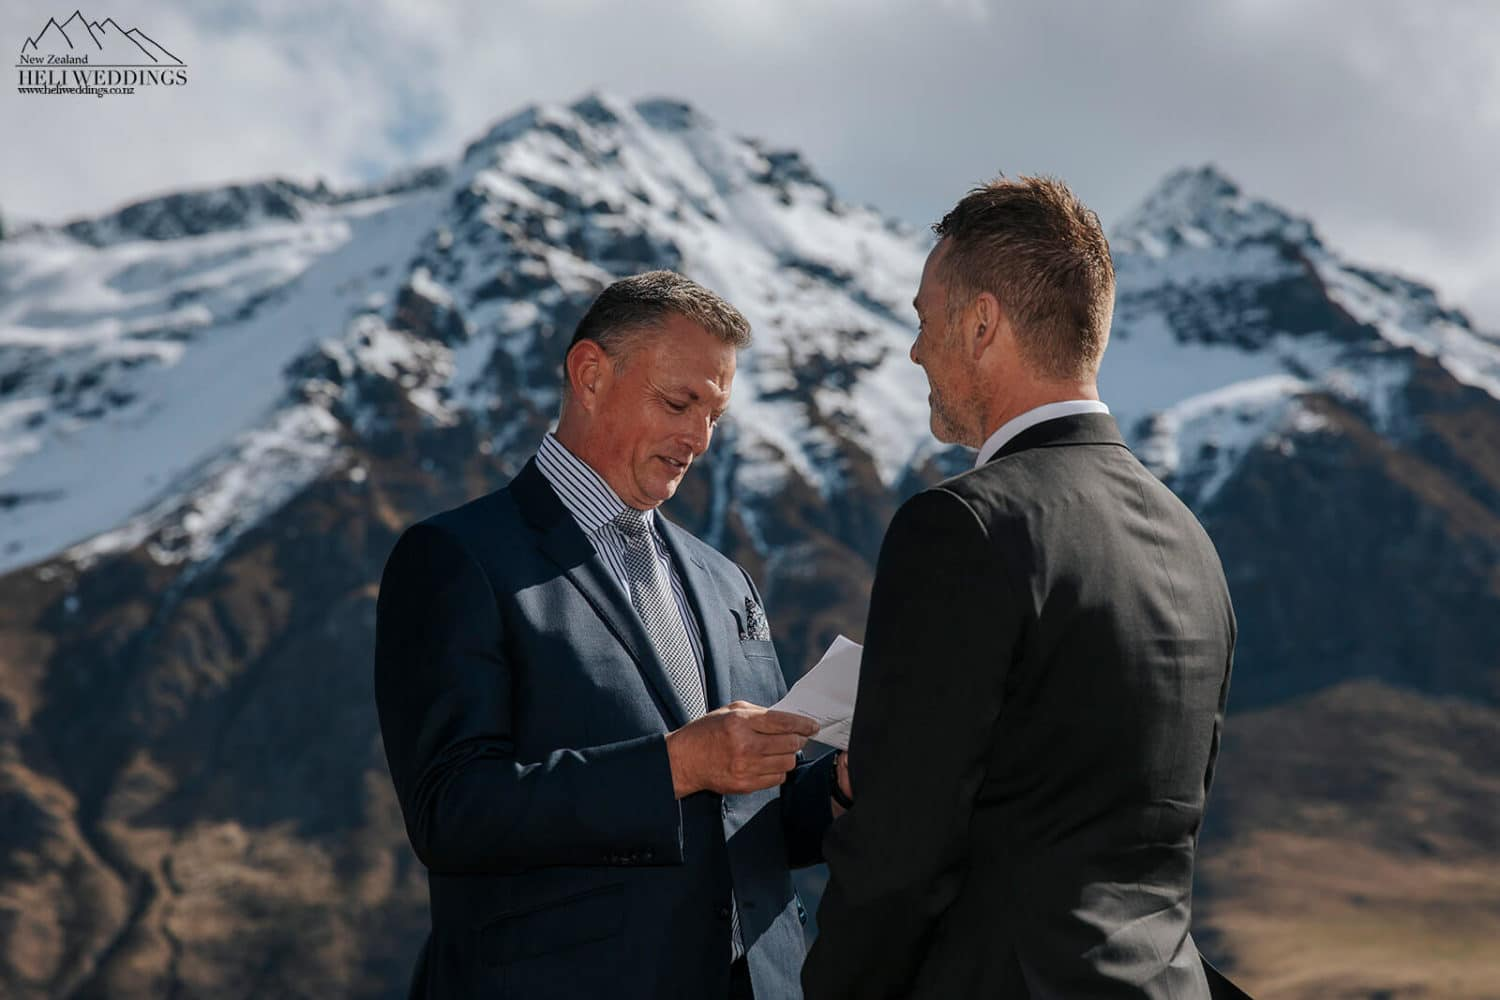 Same sex wedding ceremony in the mountains above Queenstown